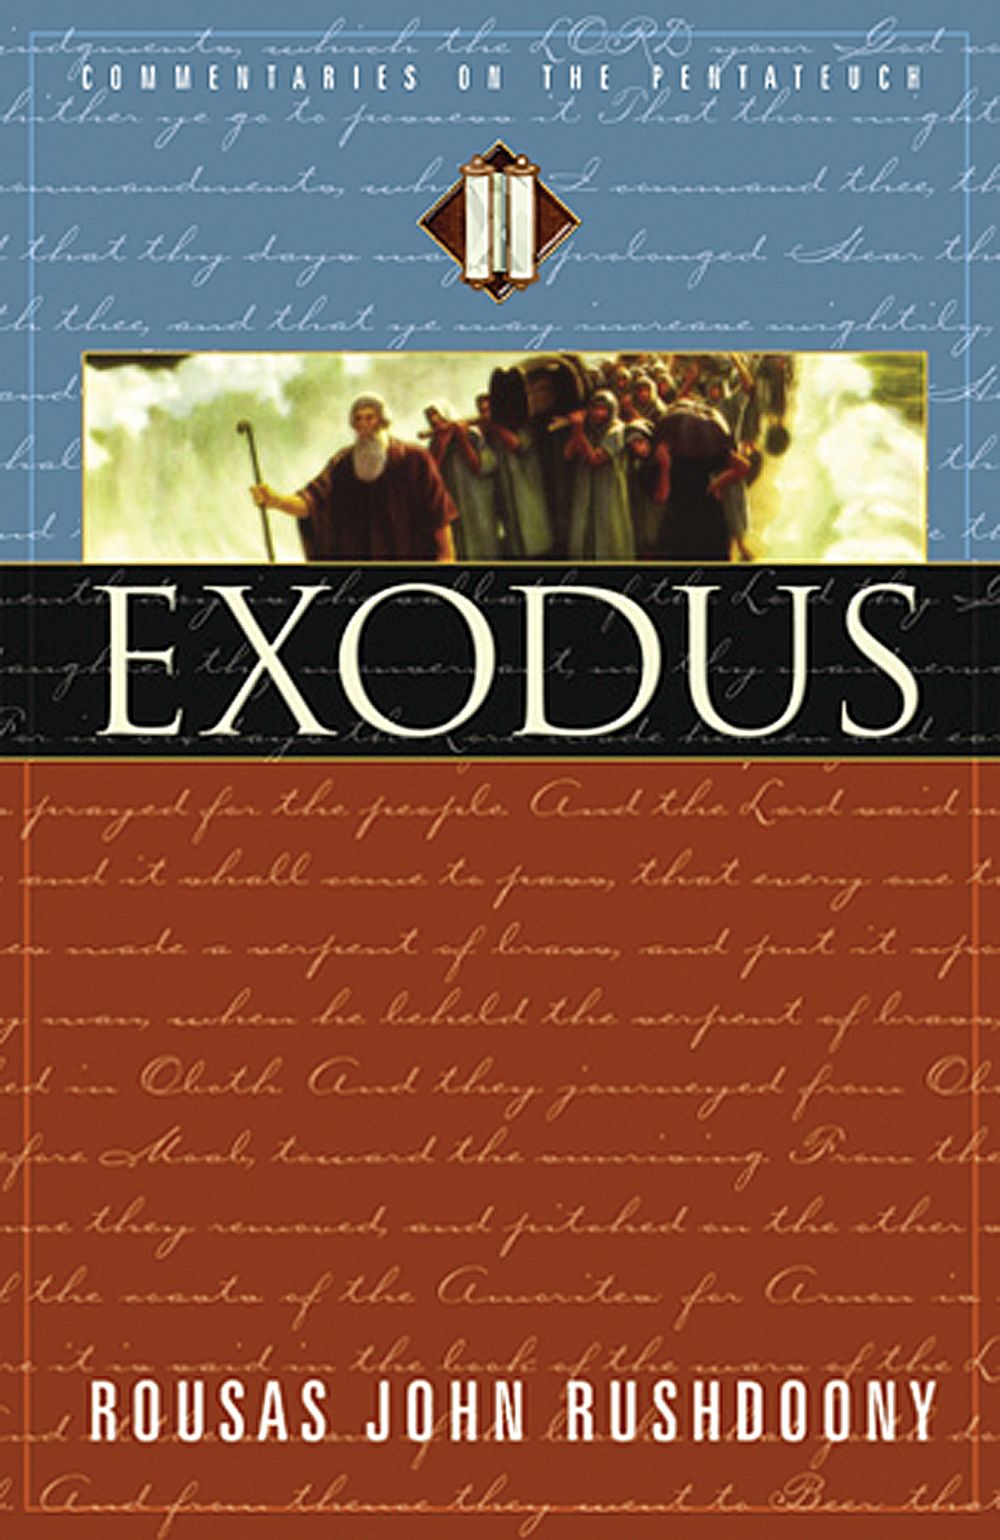 Exodus: Volume II of Commentaries on the Pentateuch